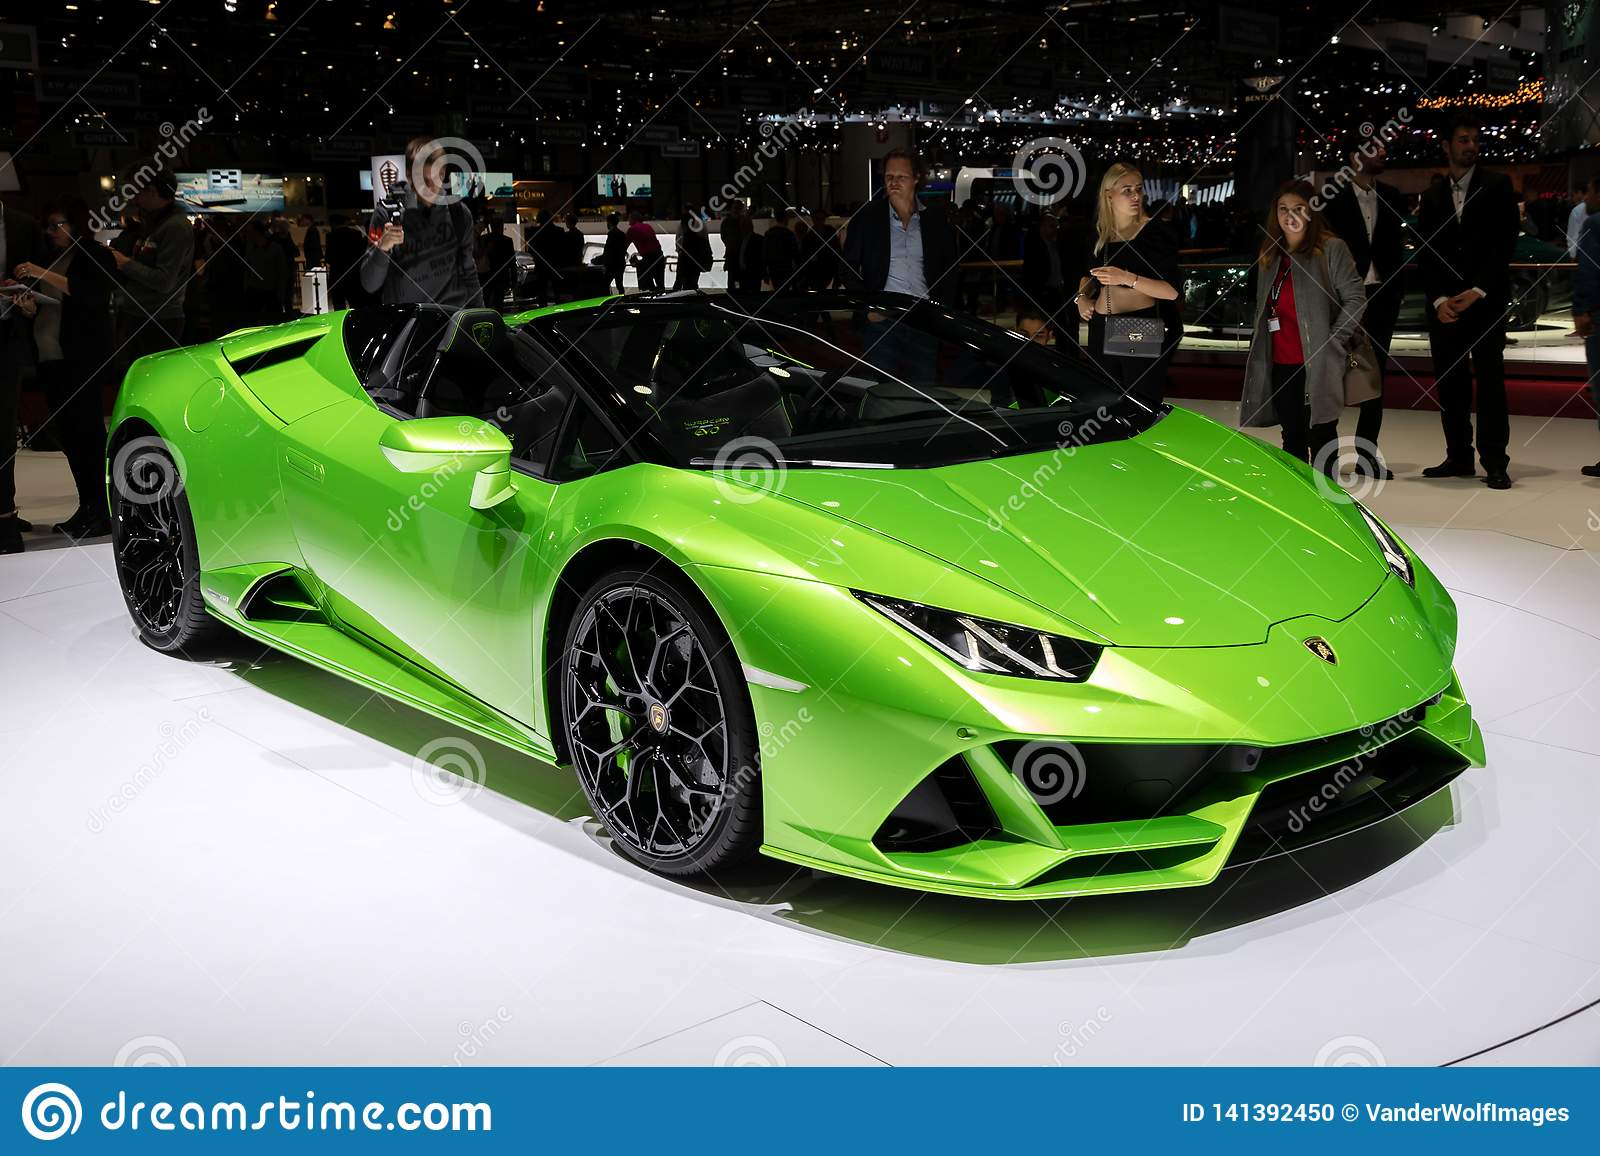 New 2019 Lamborghini Huracan Evo Spyder Supercar Editorial